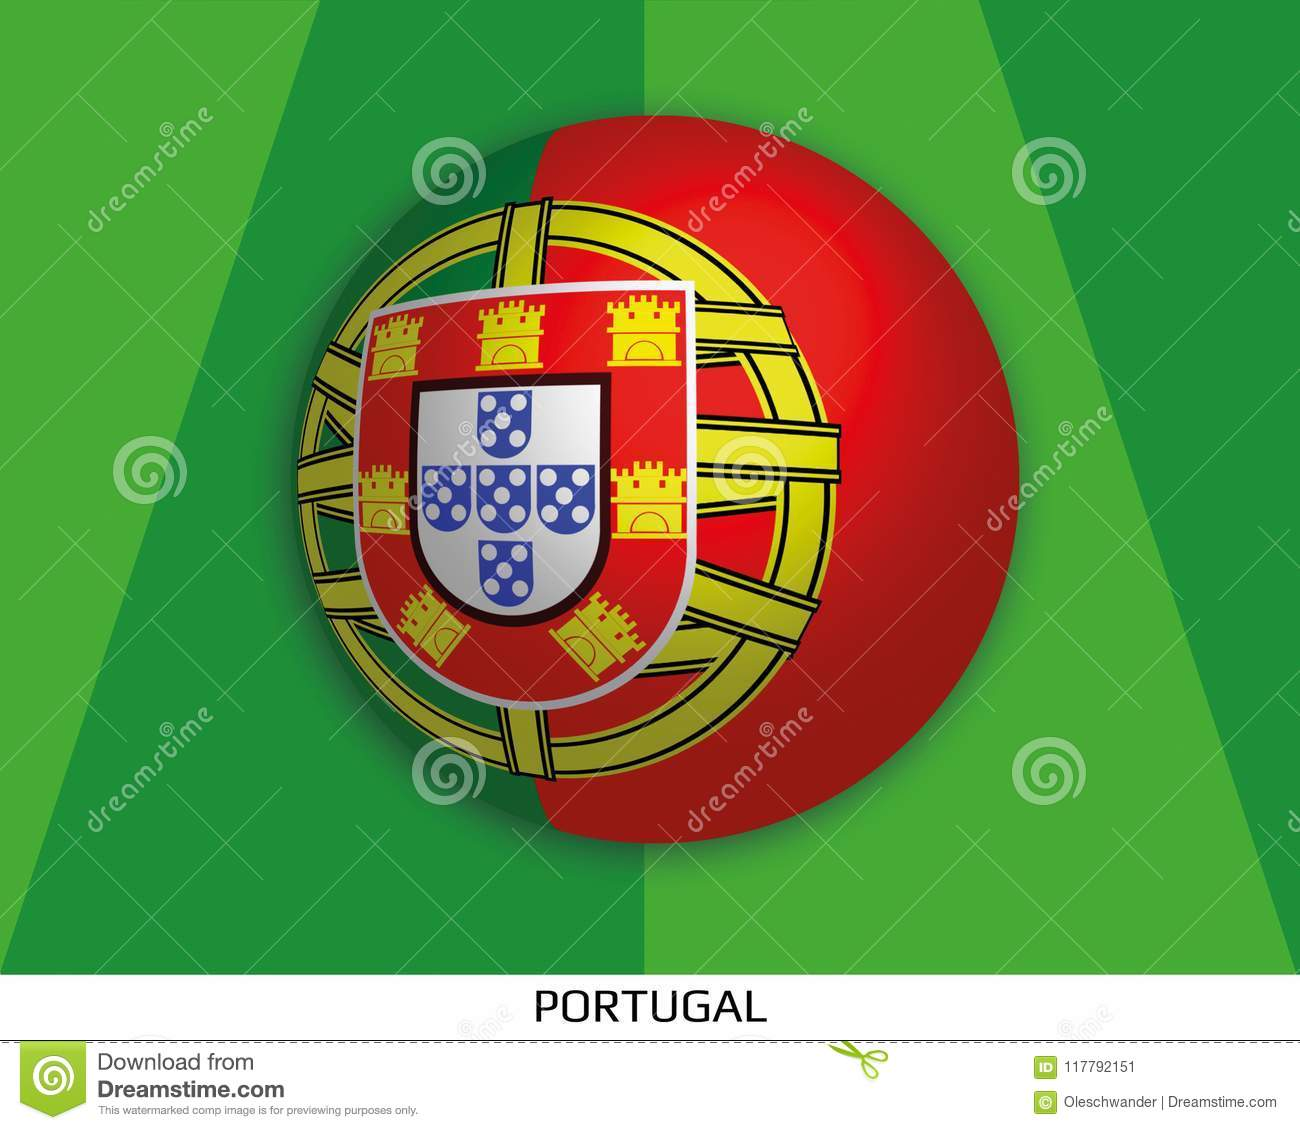 Football World Championship With Flag Of Portugal Made Round As